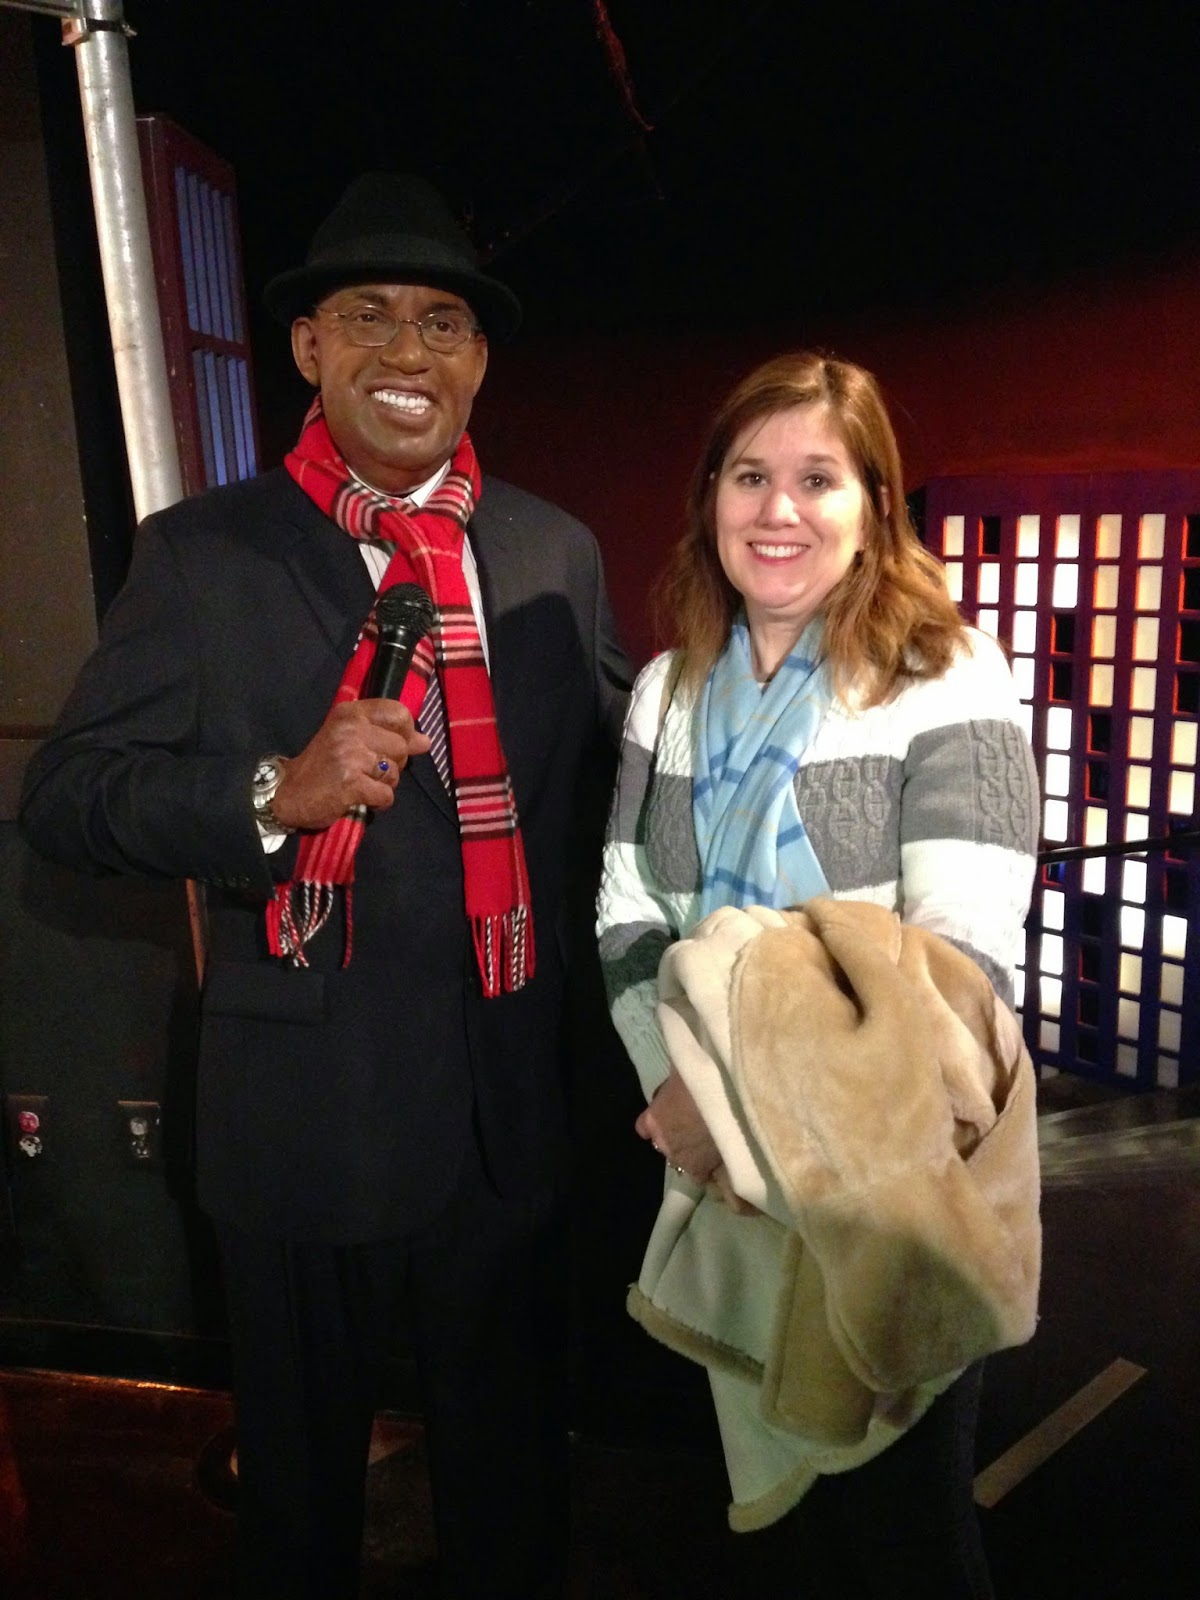 My mom with Al Roker